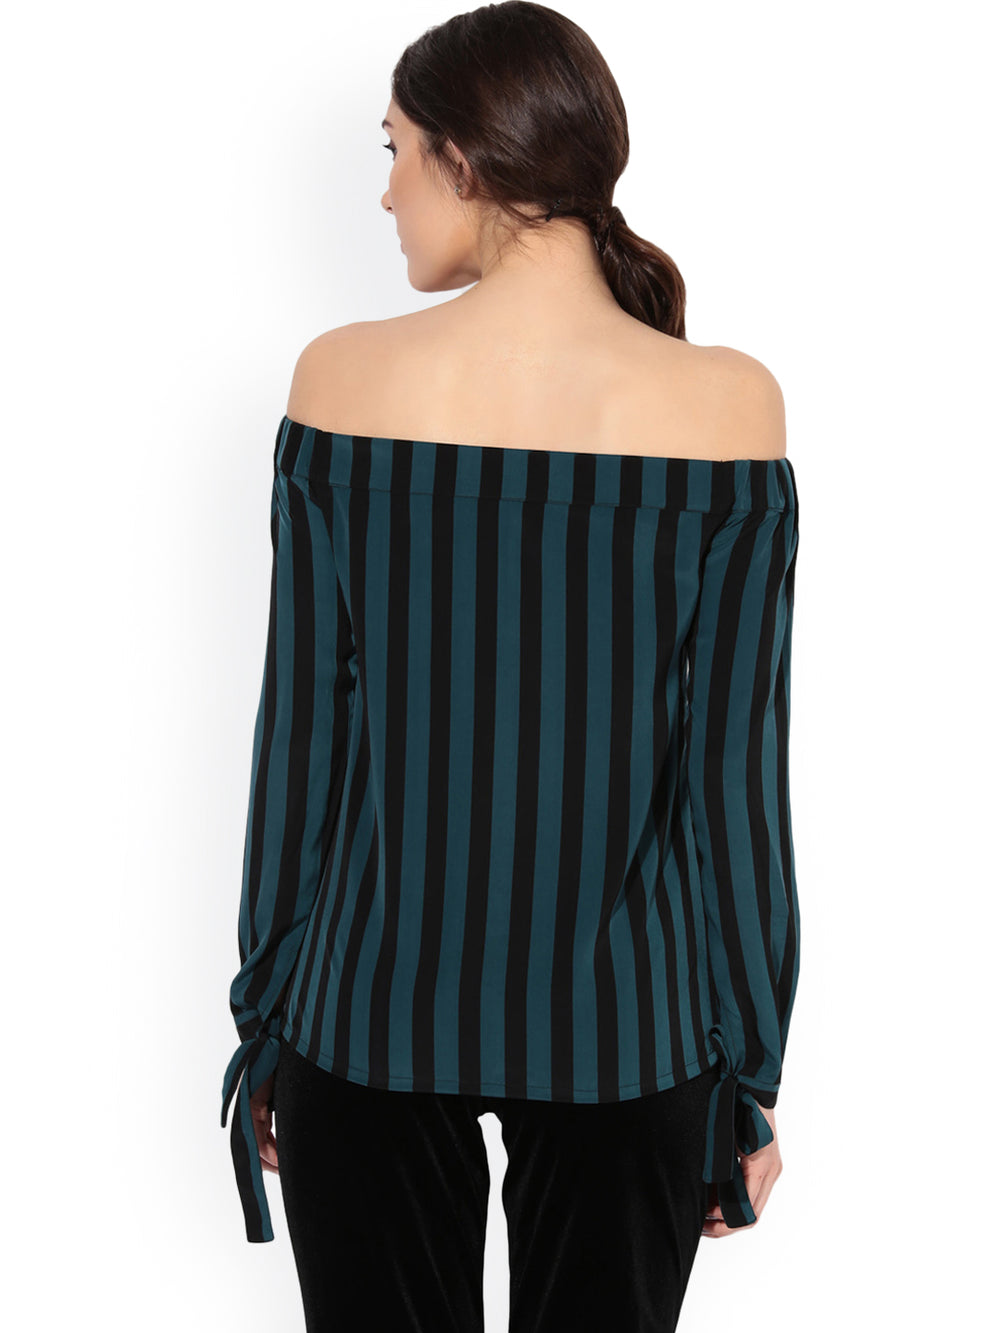 Besiva Women Green Striped Bardot Top